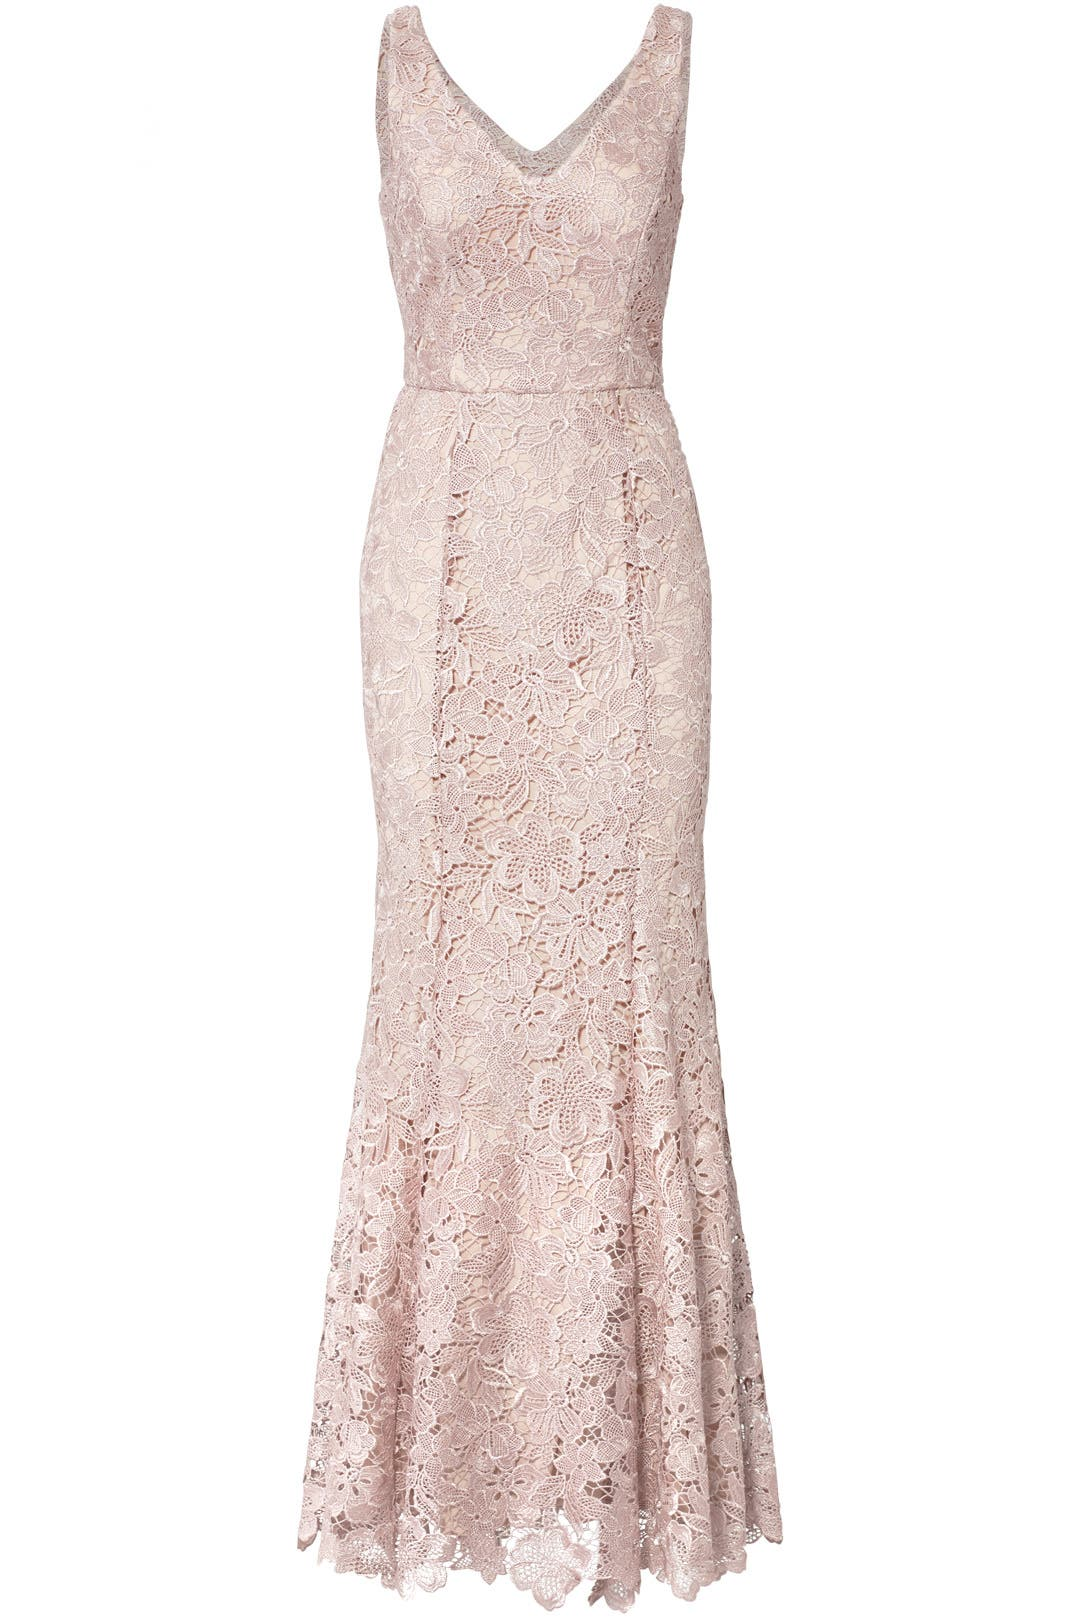 Blush Floral Lace Gown by JS Collection for $50 - $70 | Rent the Runway